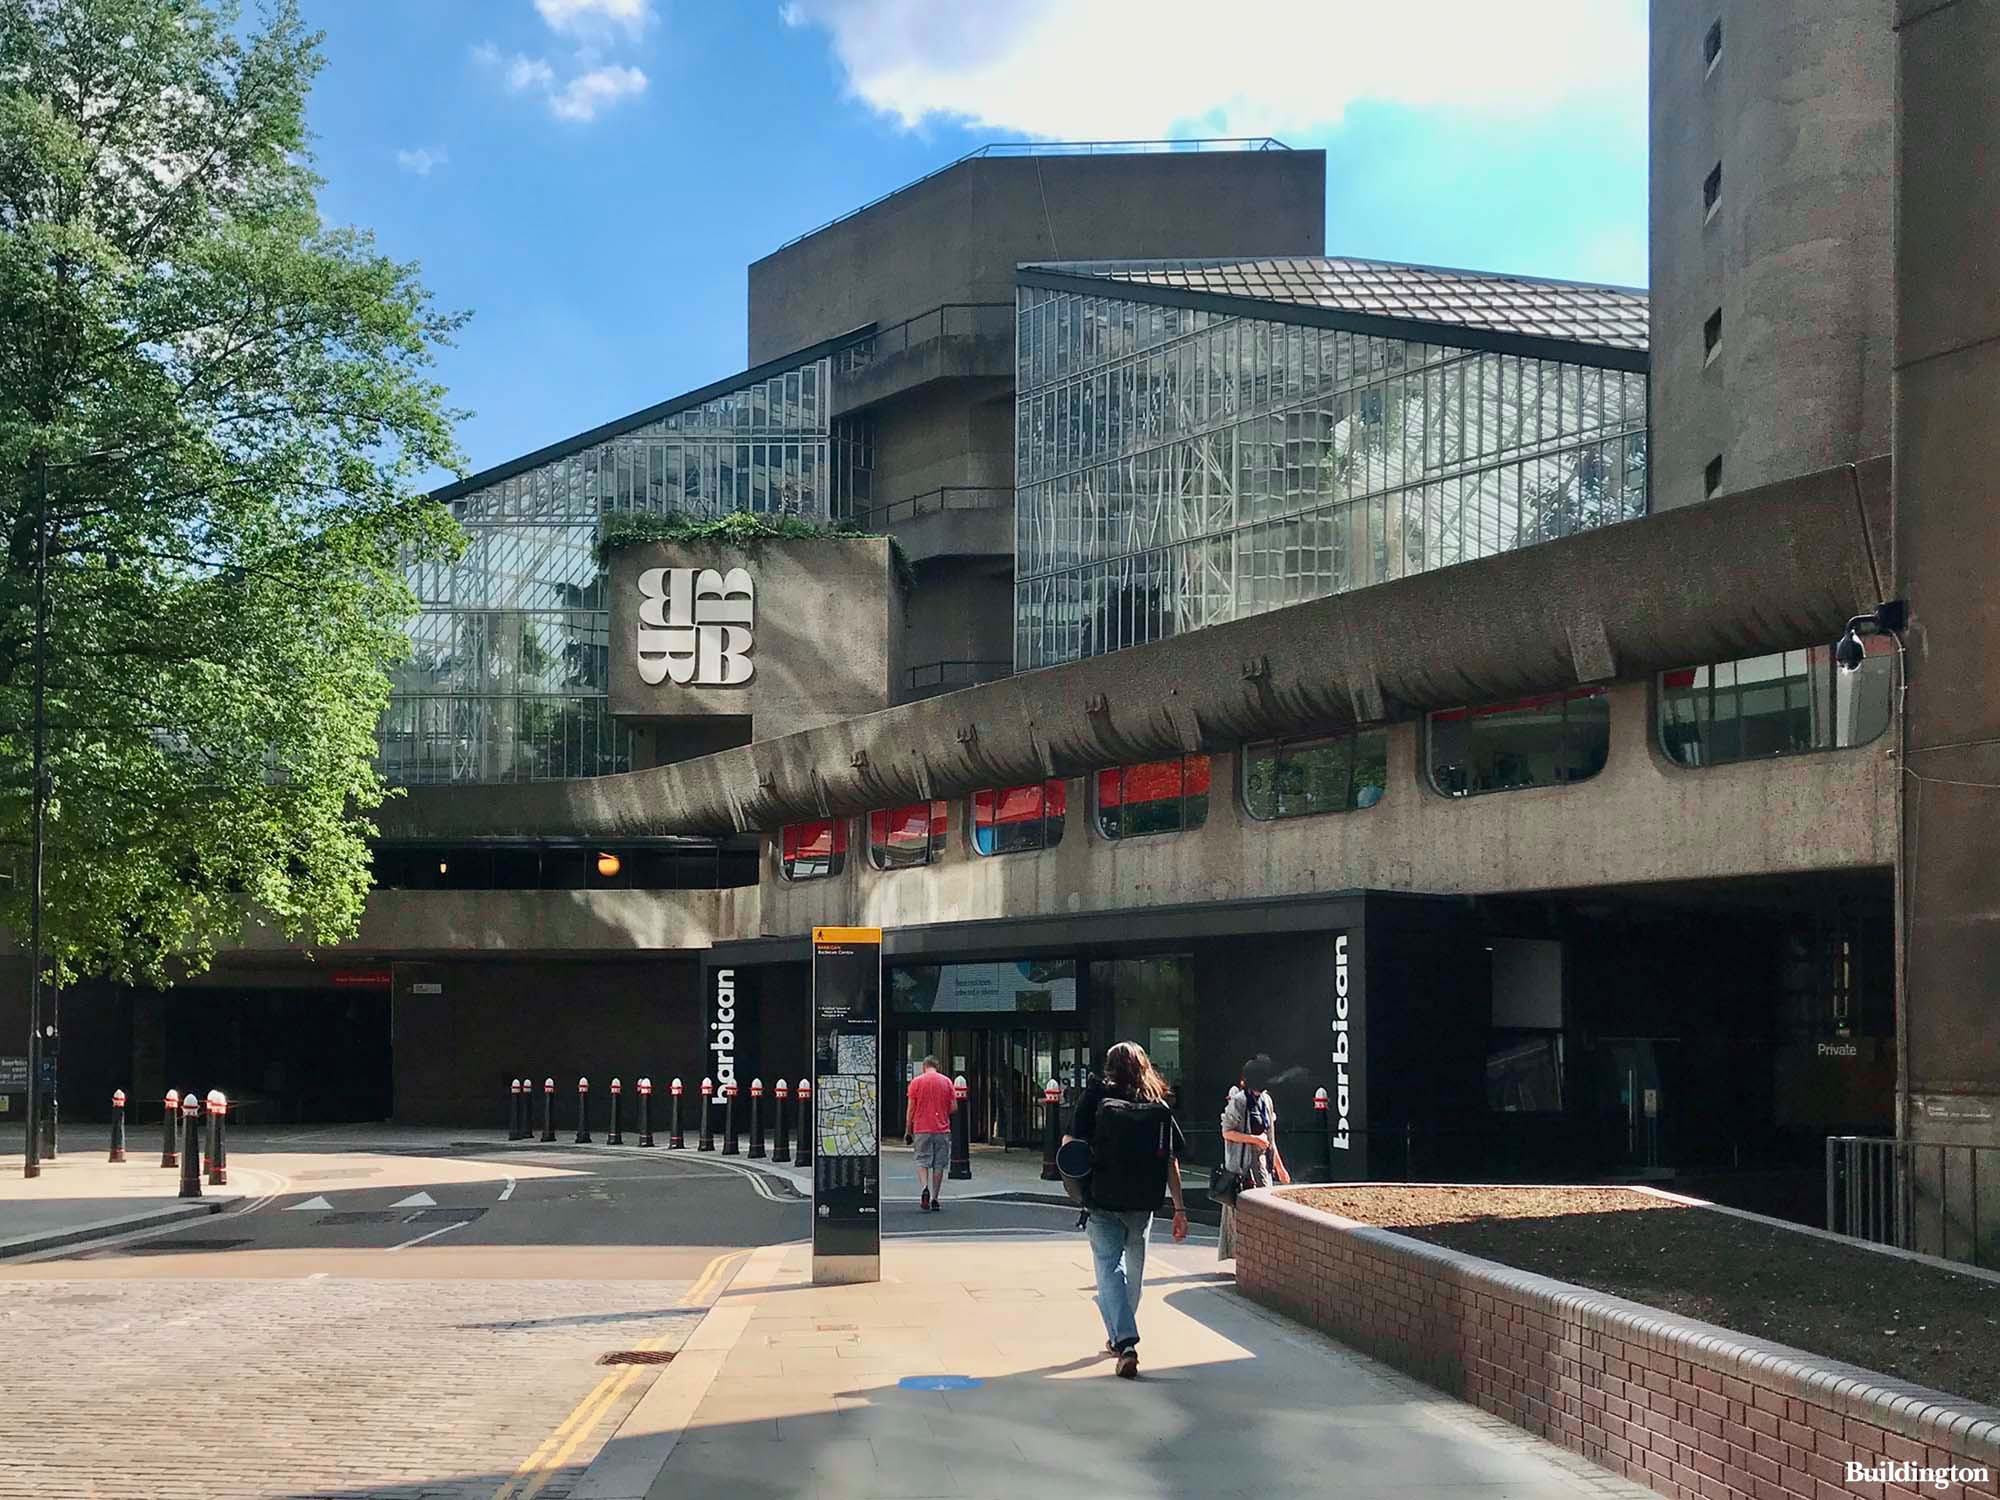 The main entrance to Barbican Centre on Silk Street in the City of London EC2.